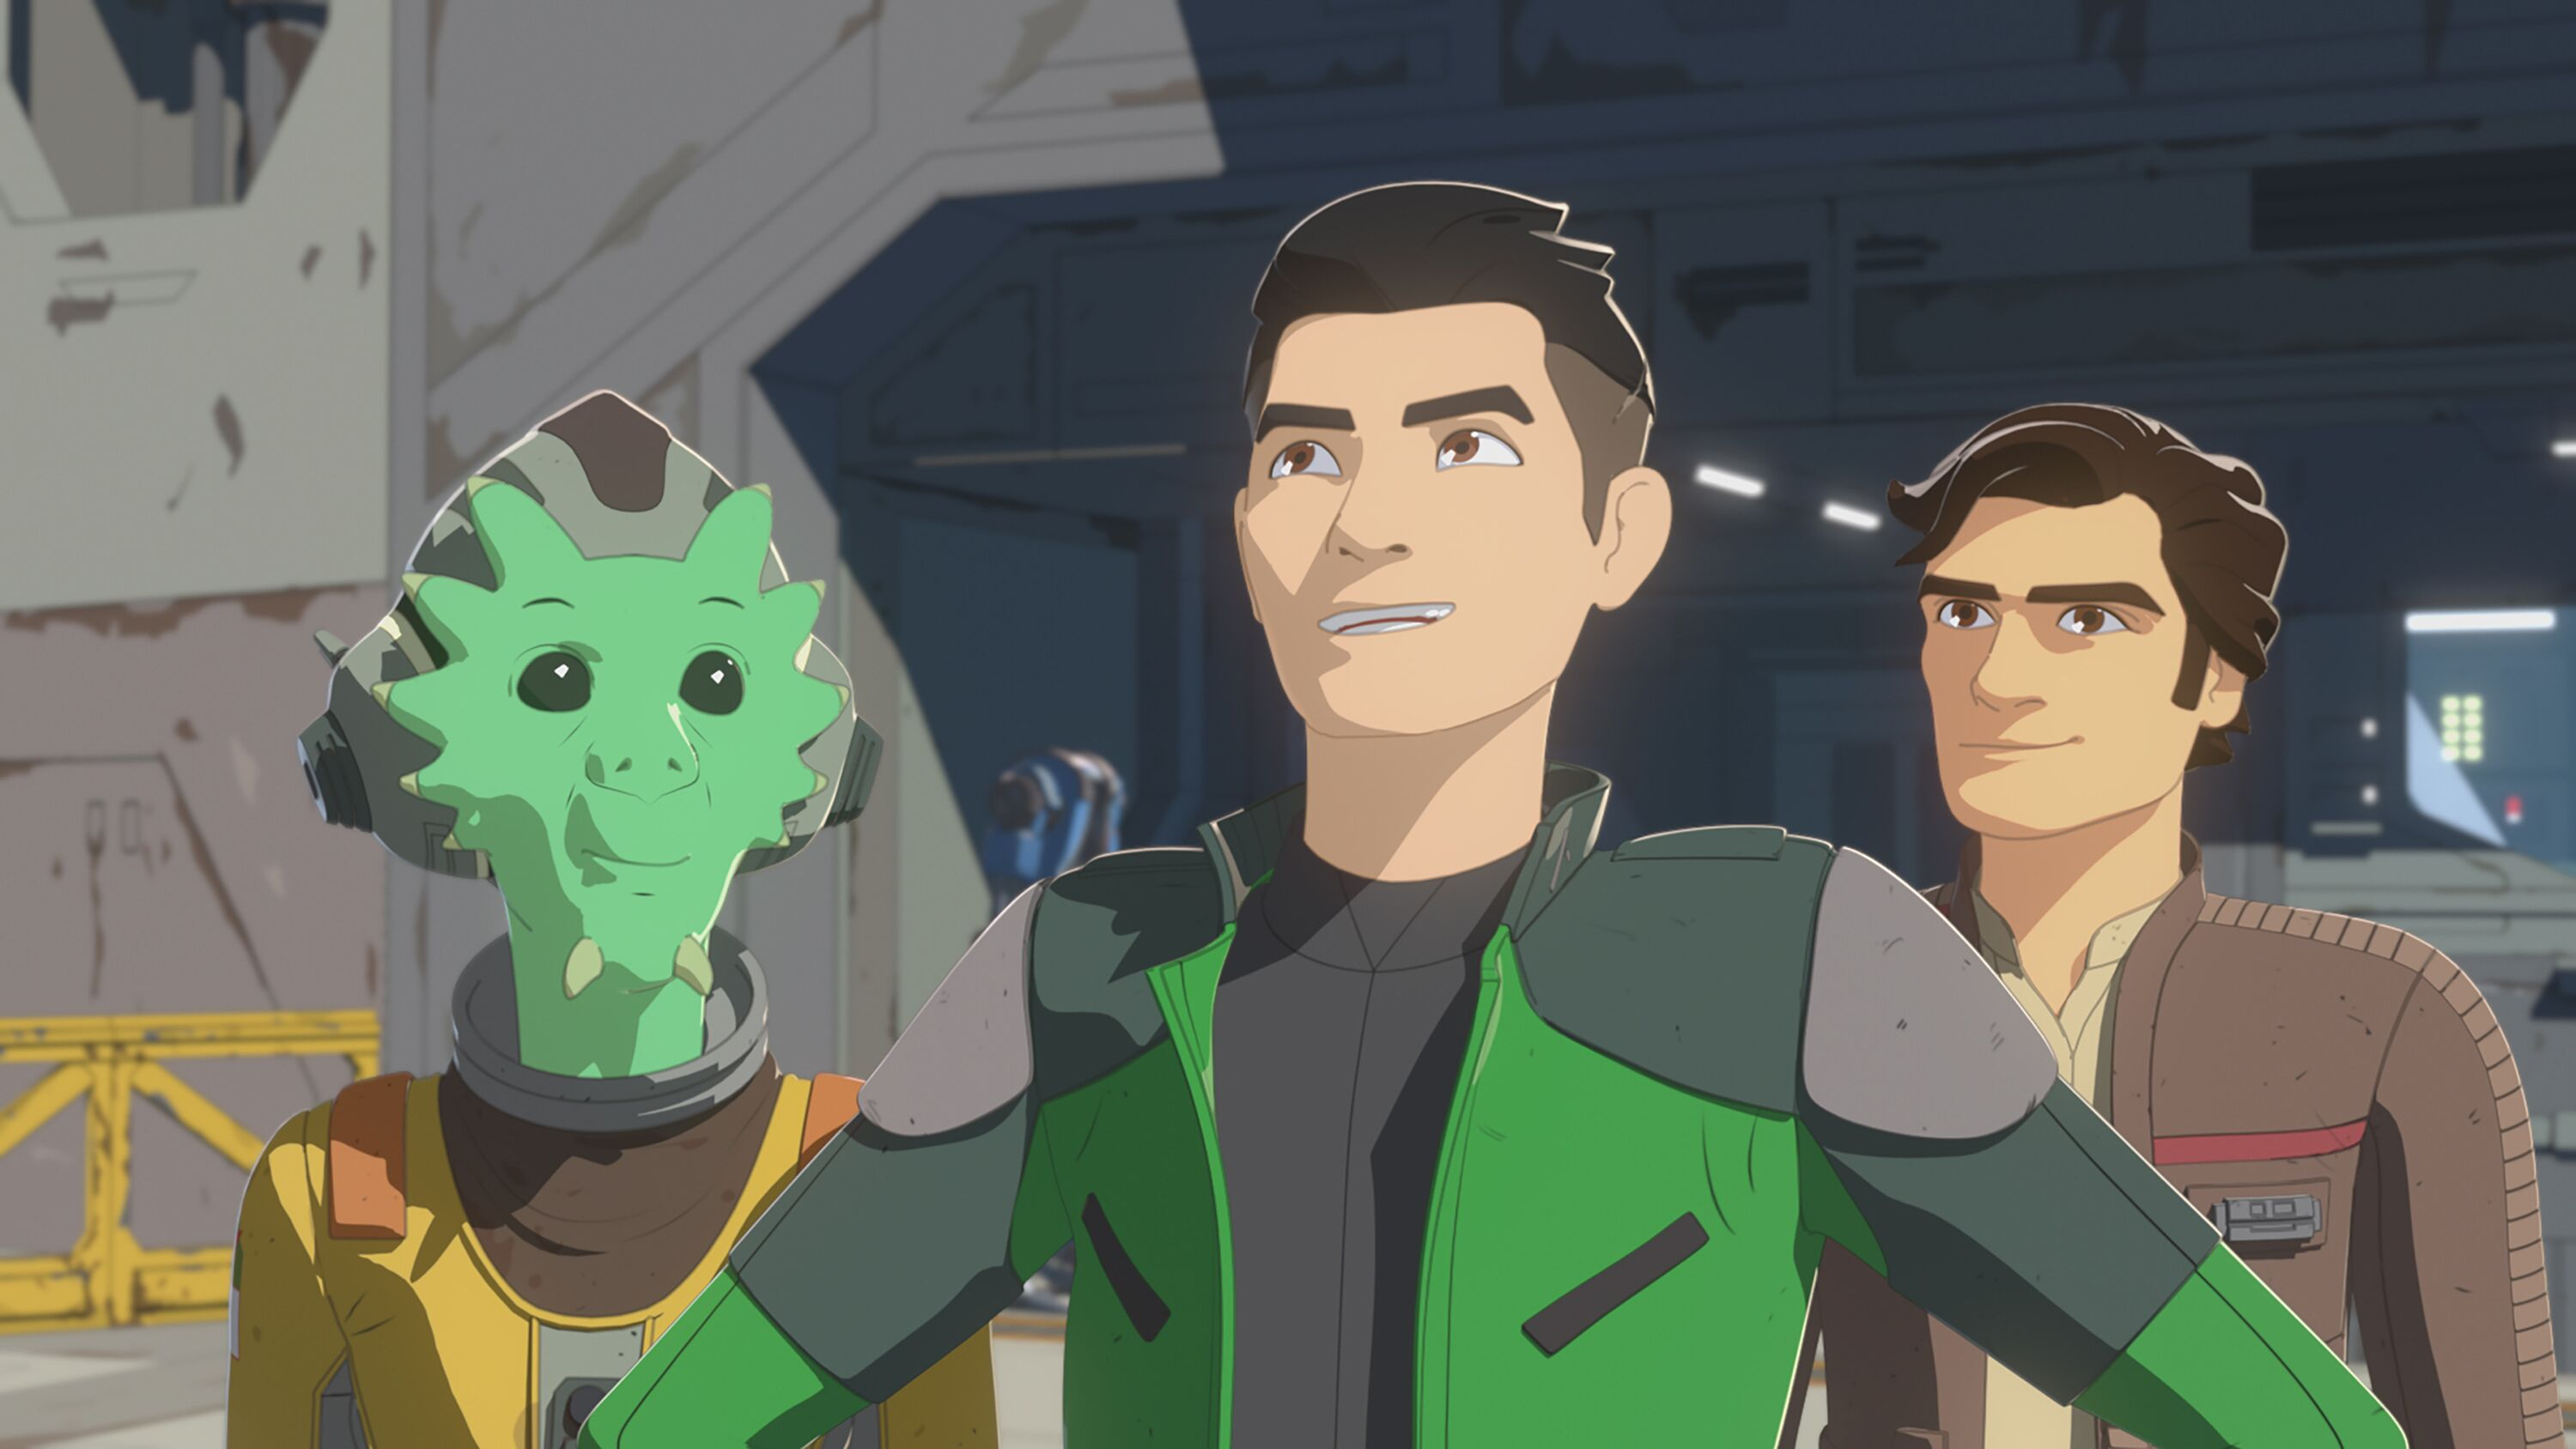 Star Wars: Resistance: Will we ever see a Force user on the show?